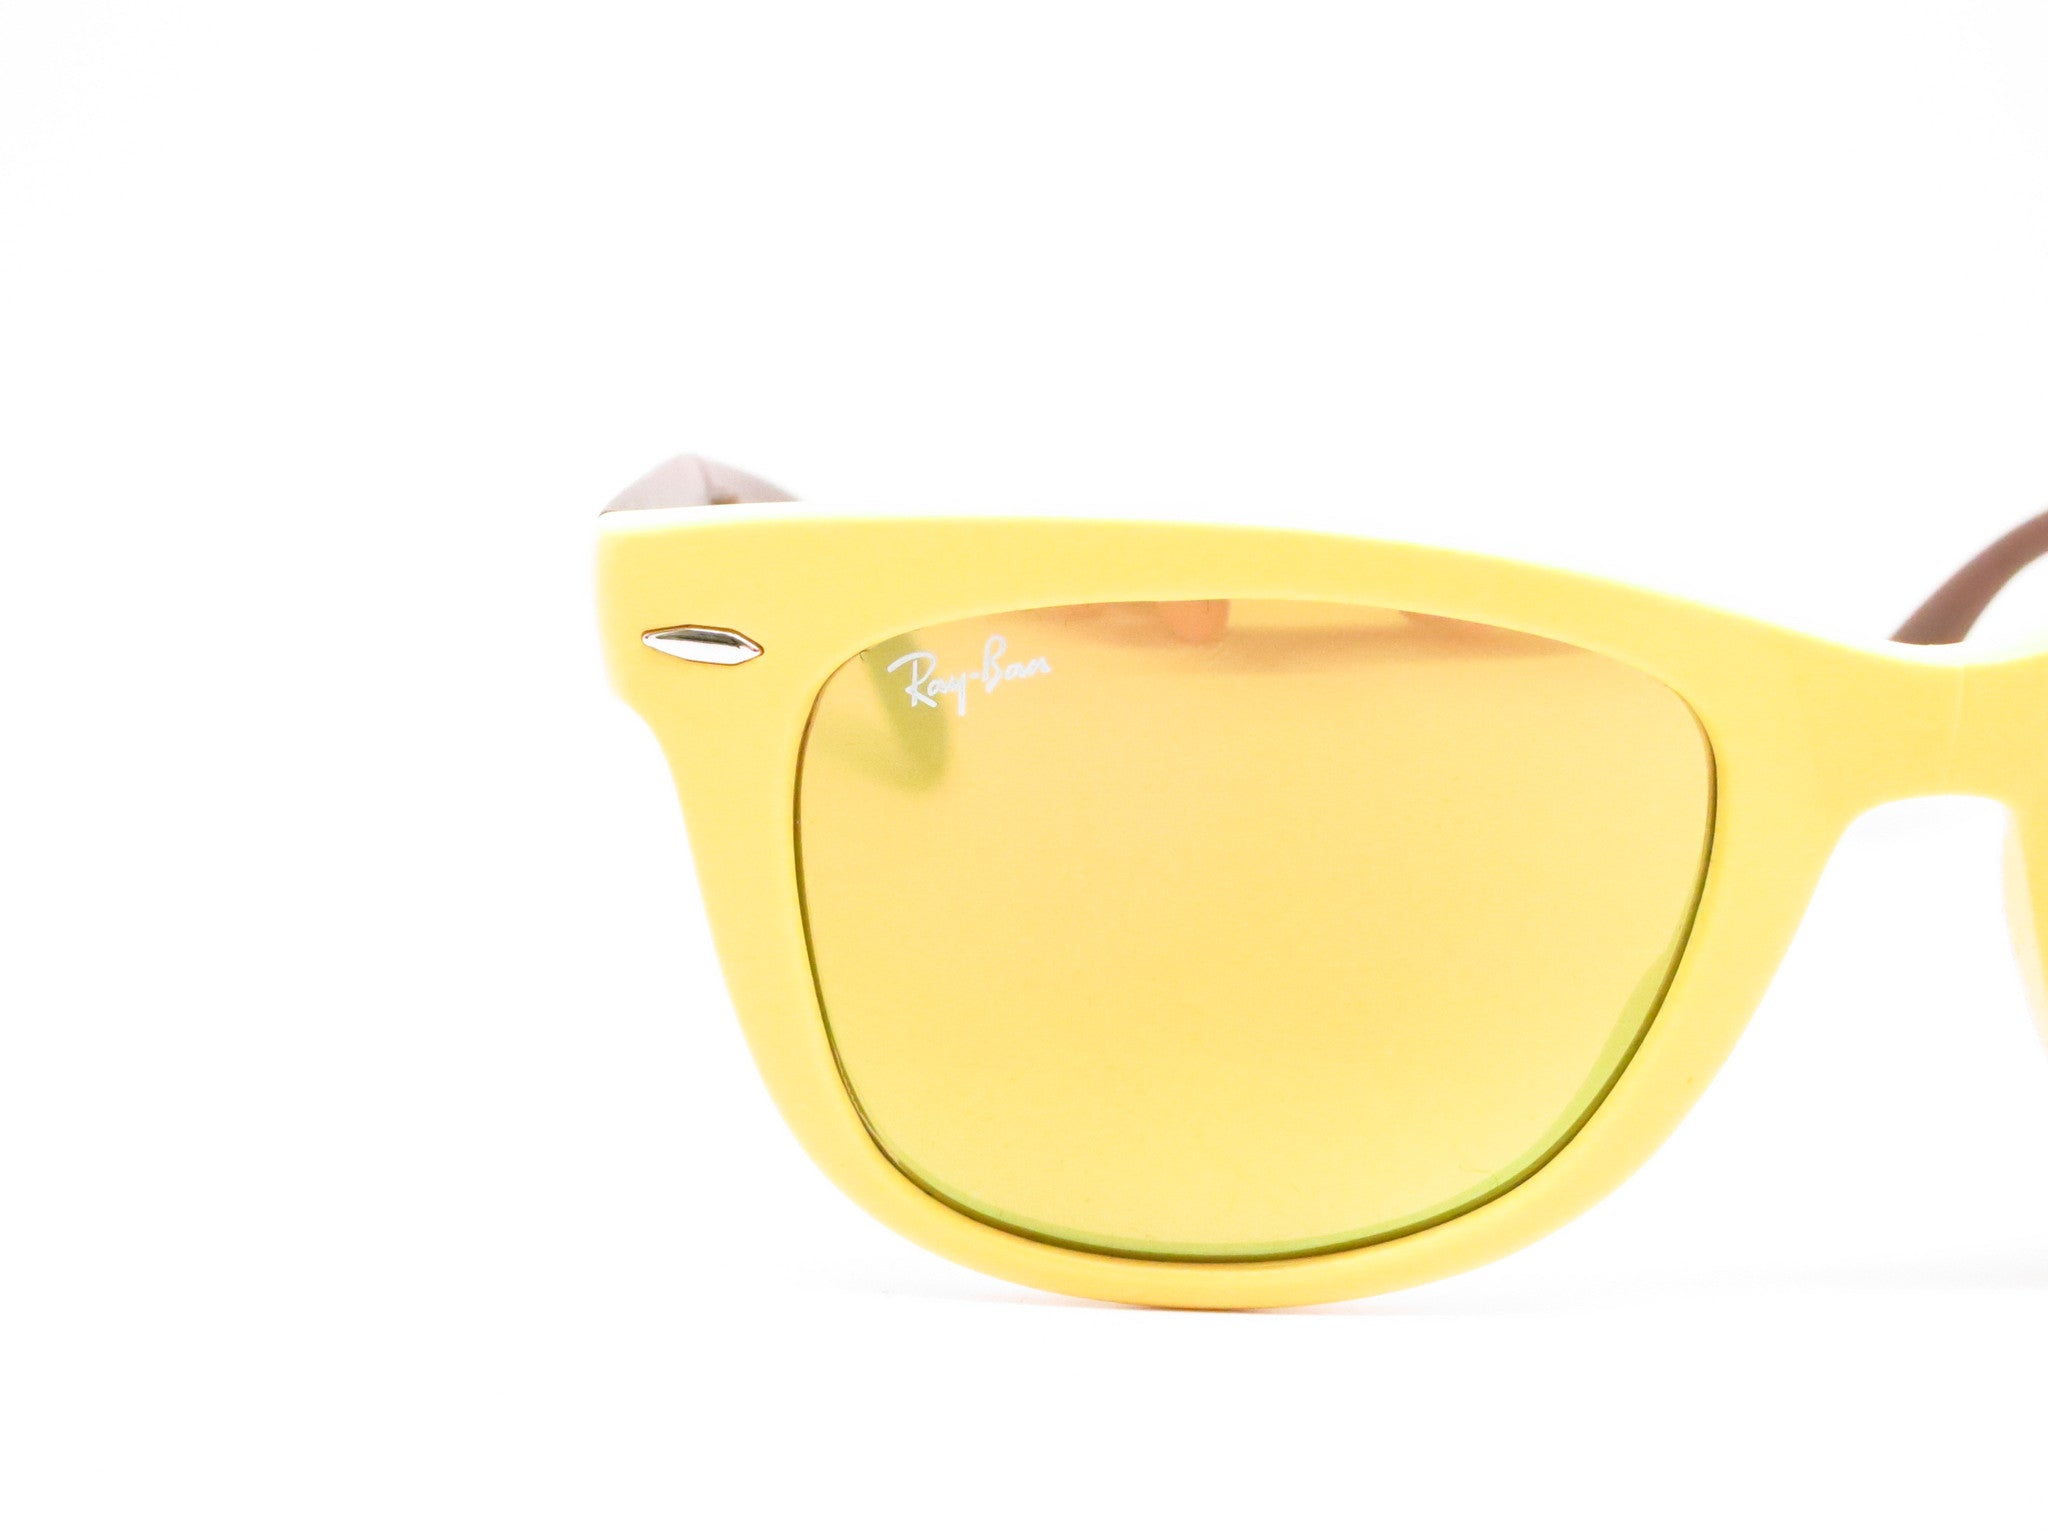 f03bd67e16 ... polarised lenses 50mm c80b9 ec9a8  discount ray ban rb 4105 folding  wayfarer 6051 93 yellow brown sunglasses eye 884ec 0aa7c